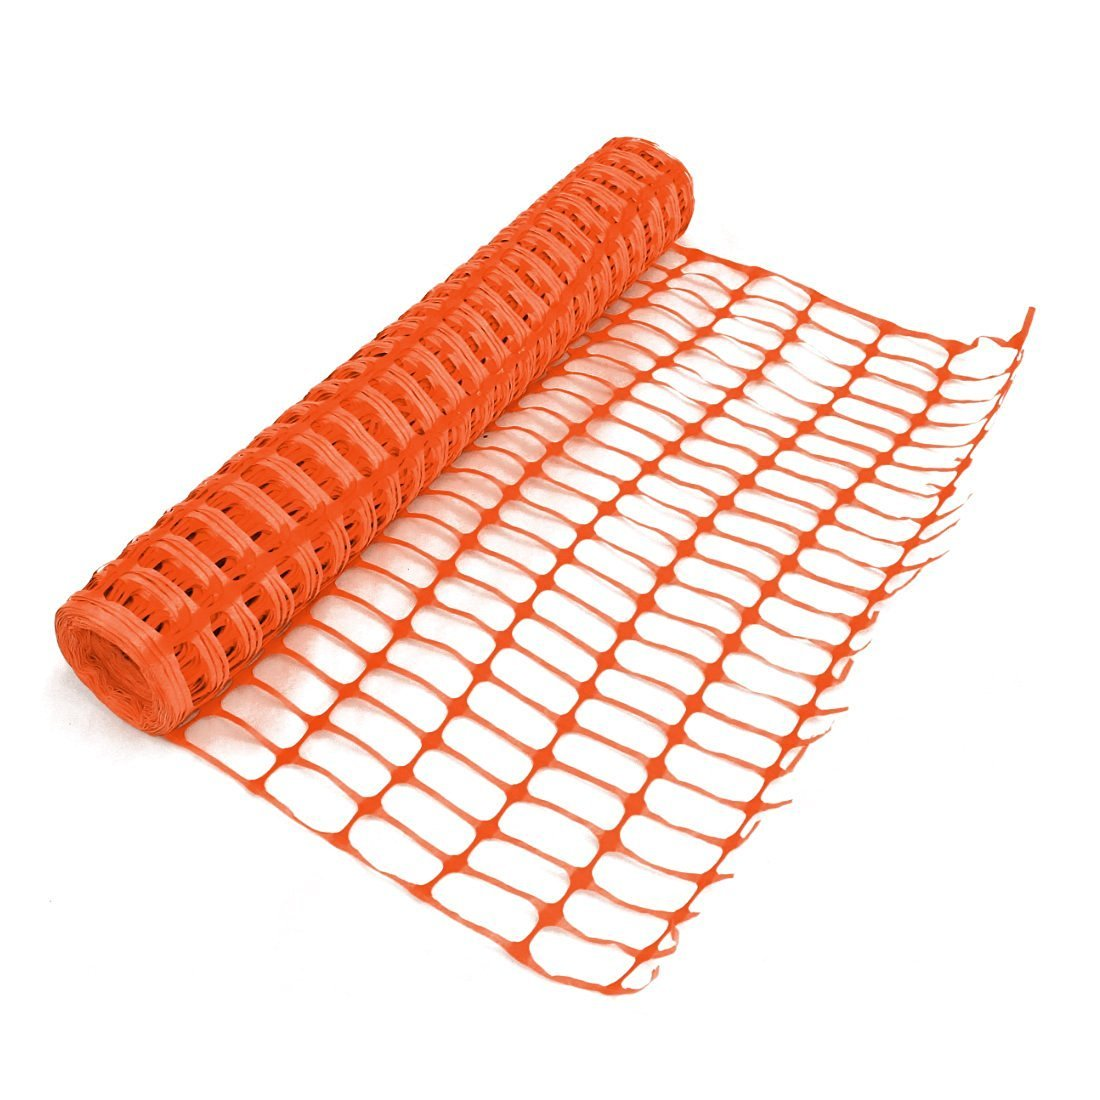 ORANGE PLASTIC FENCING PINS POST STAKES 1m high for Temporary Event Fencing x 50